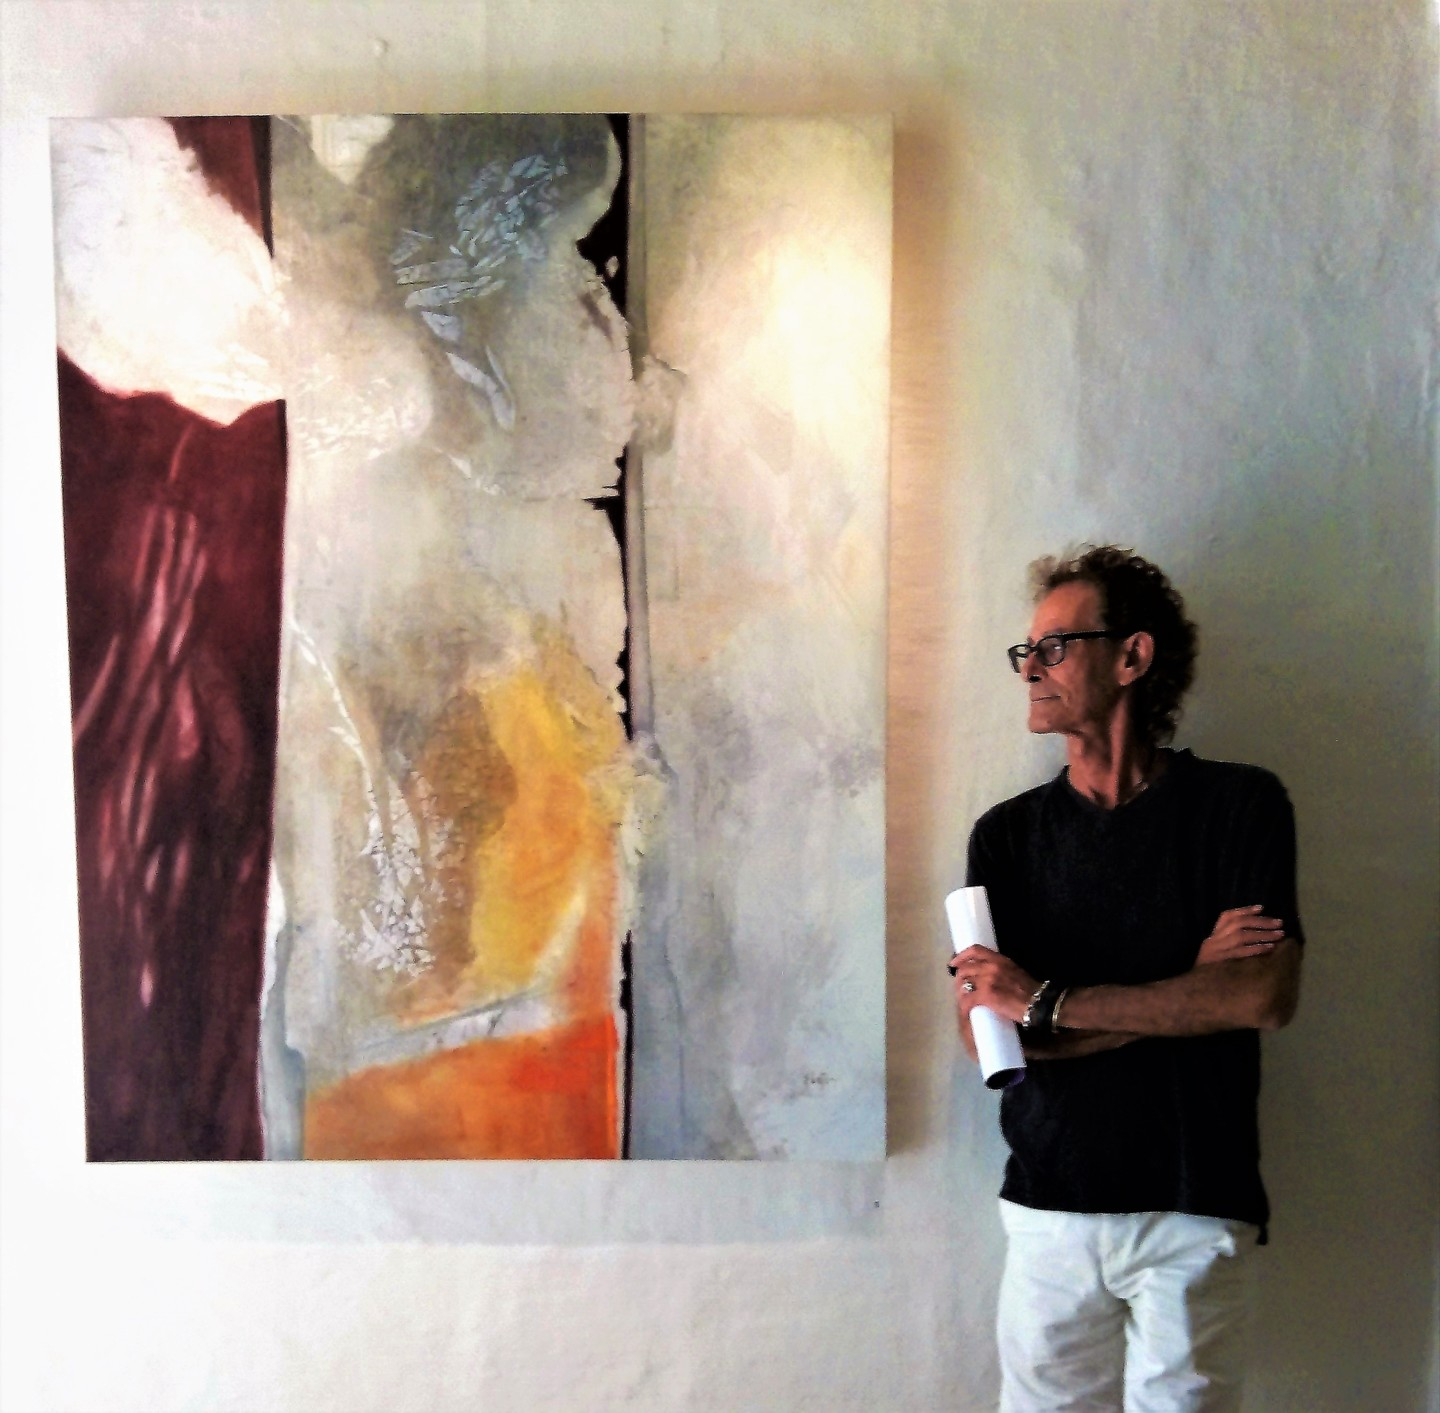 Damian Ebejer - Next to Abraxas lingers at the Divide